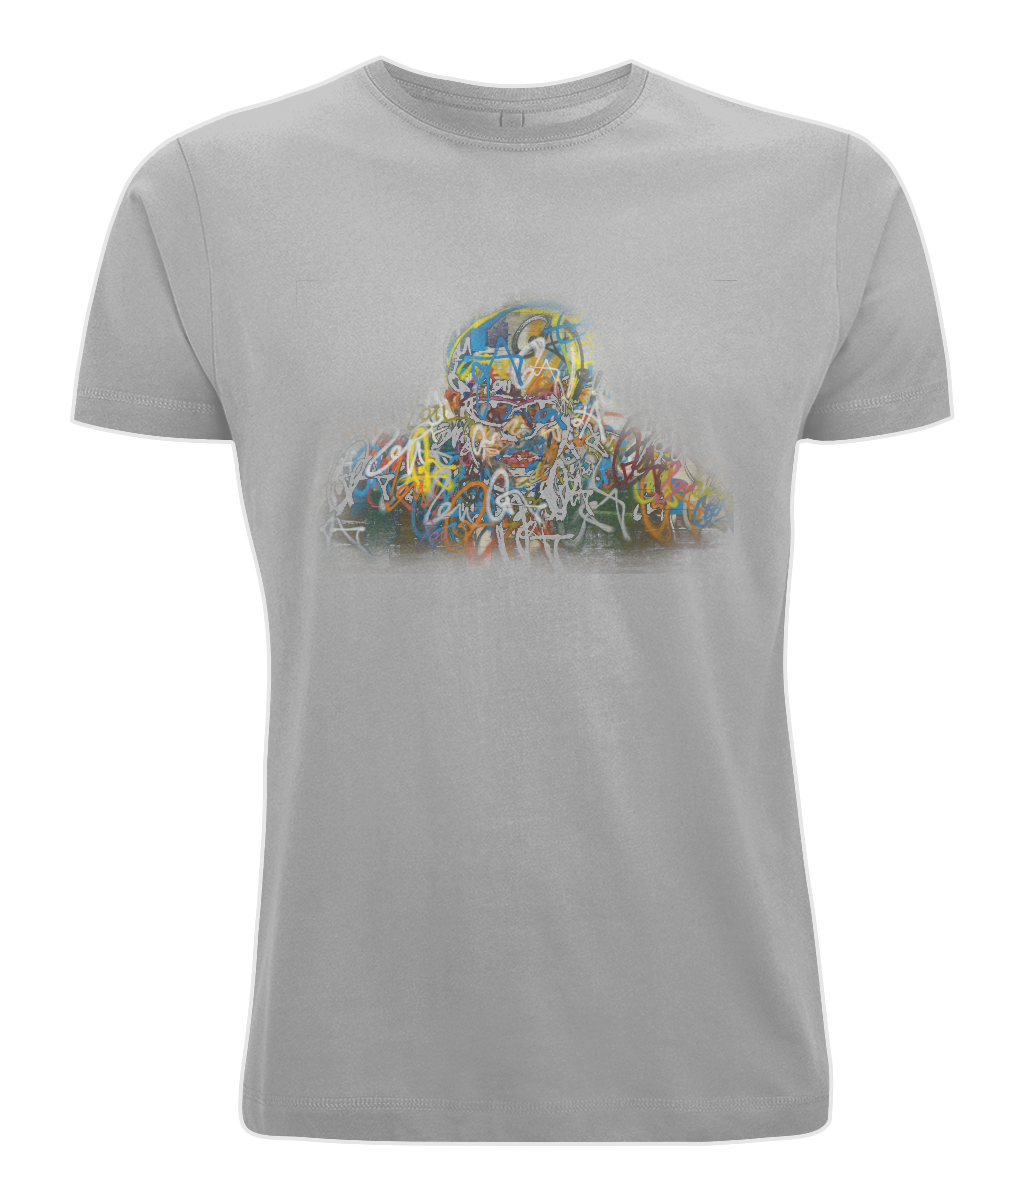 N03 Classic Cut Jersey Men's T-Shirt Graffiti MESS